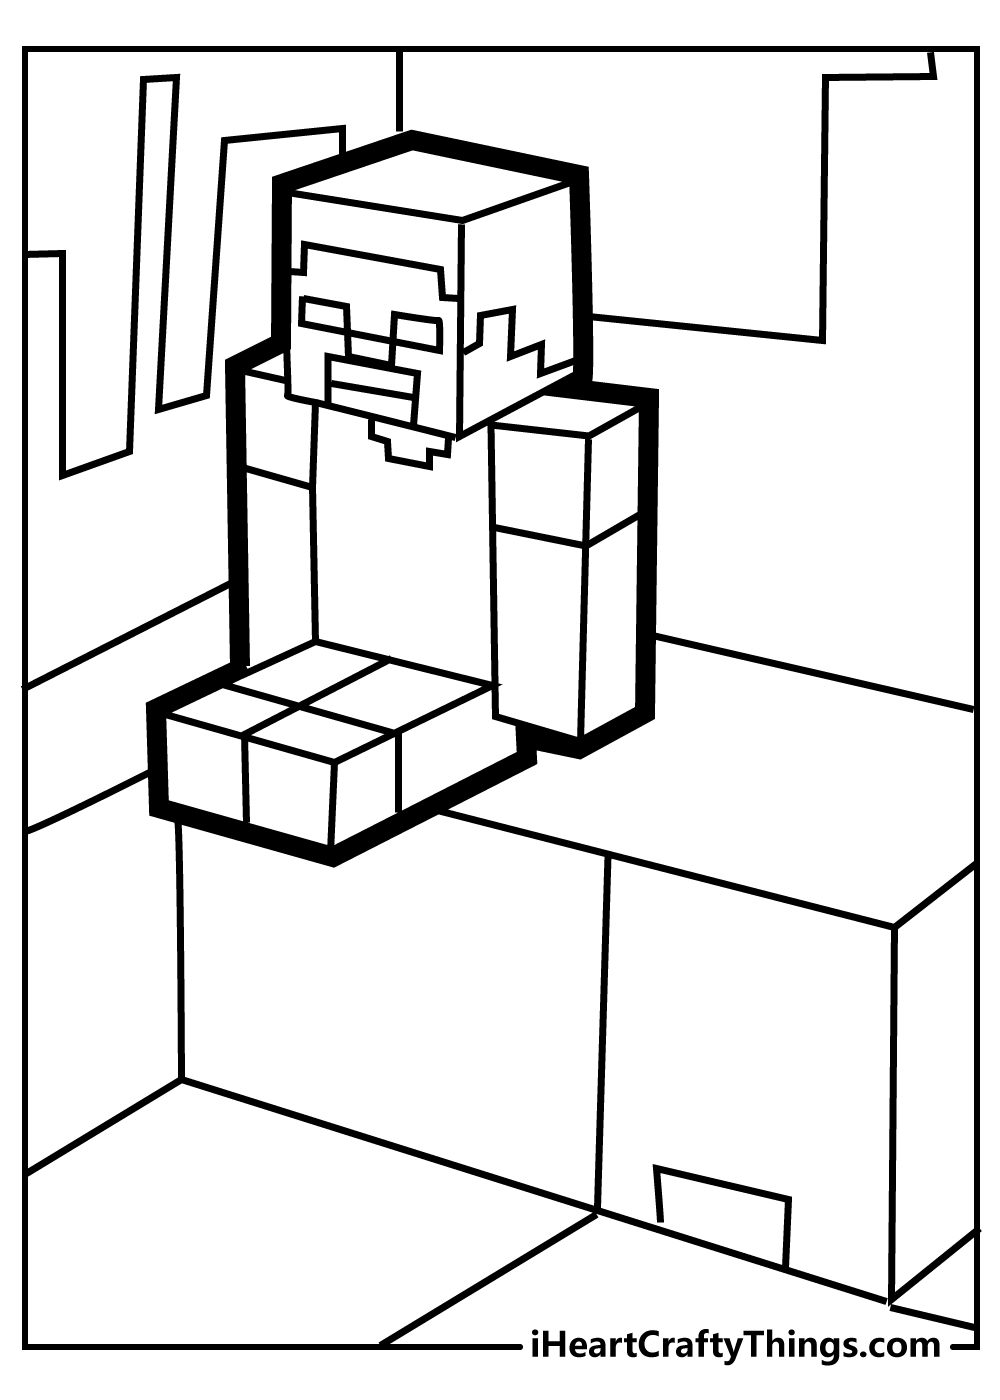 coloring pages of minecraft for kids